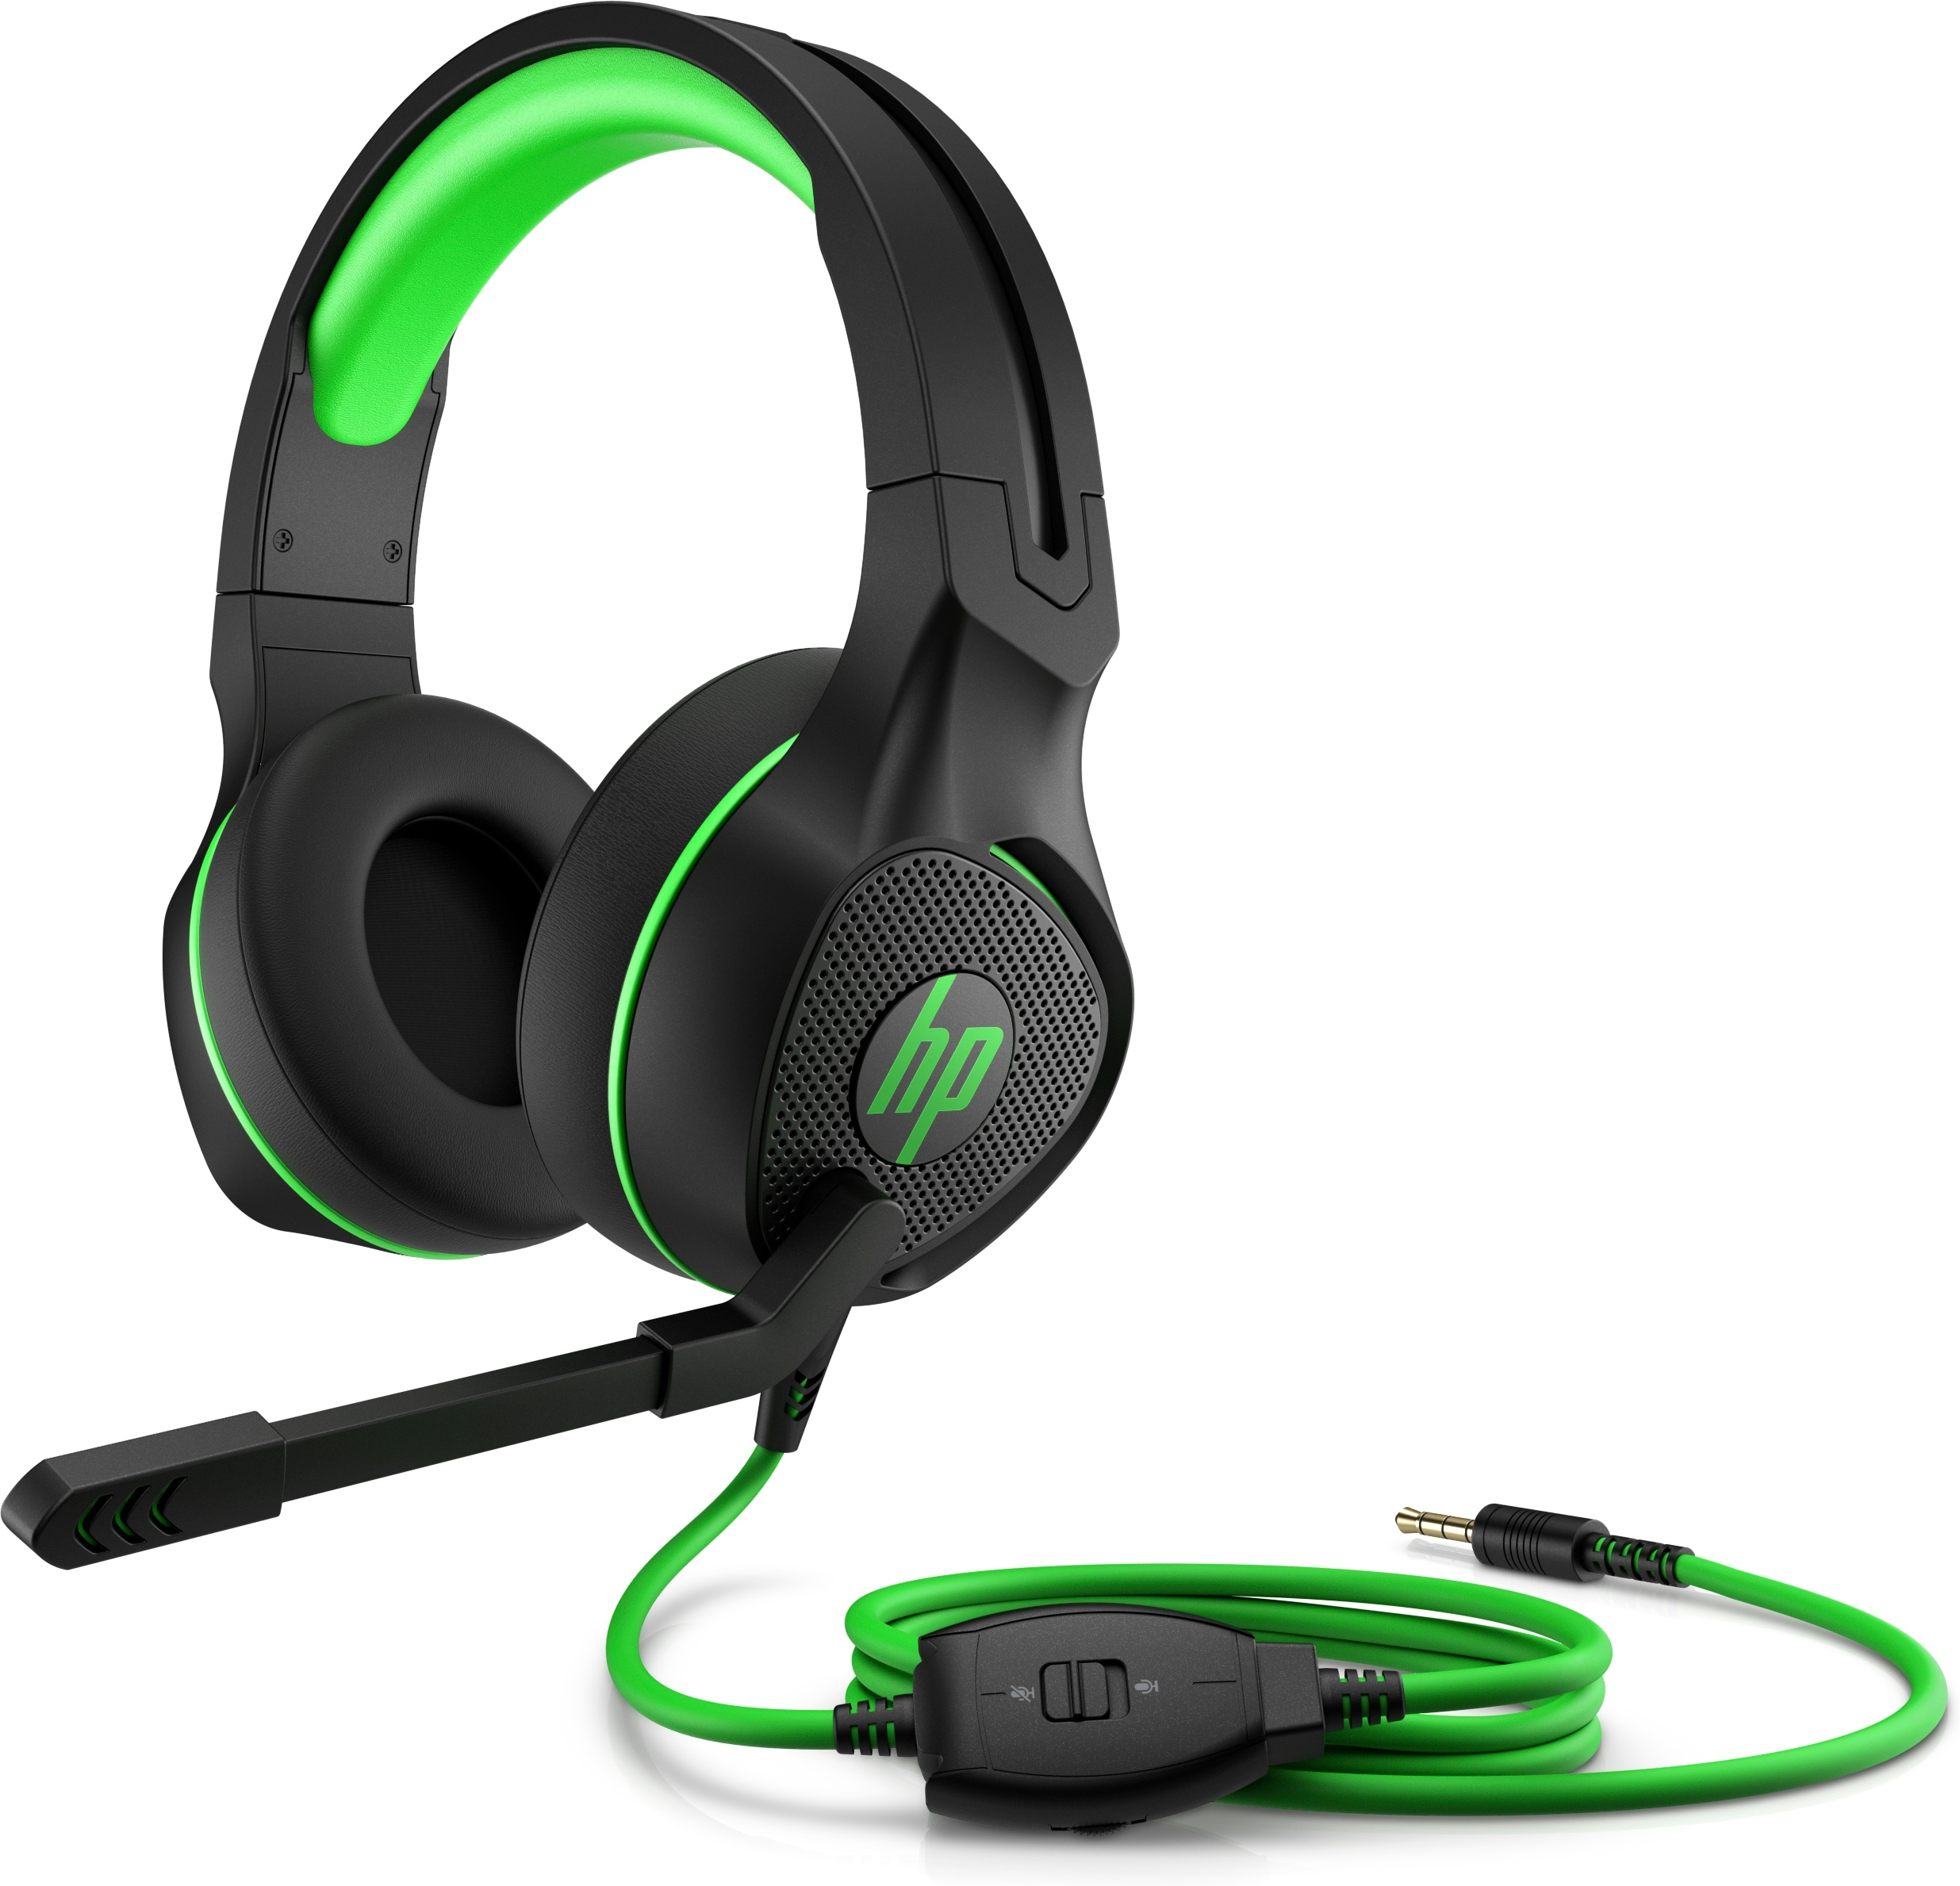 #HP Pavilion Gaming 600 Headset 4BX33AA